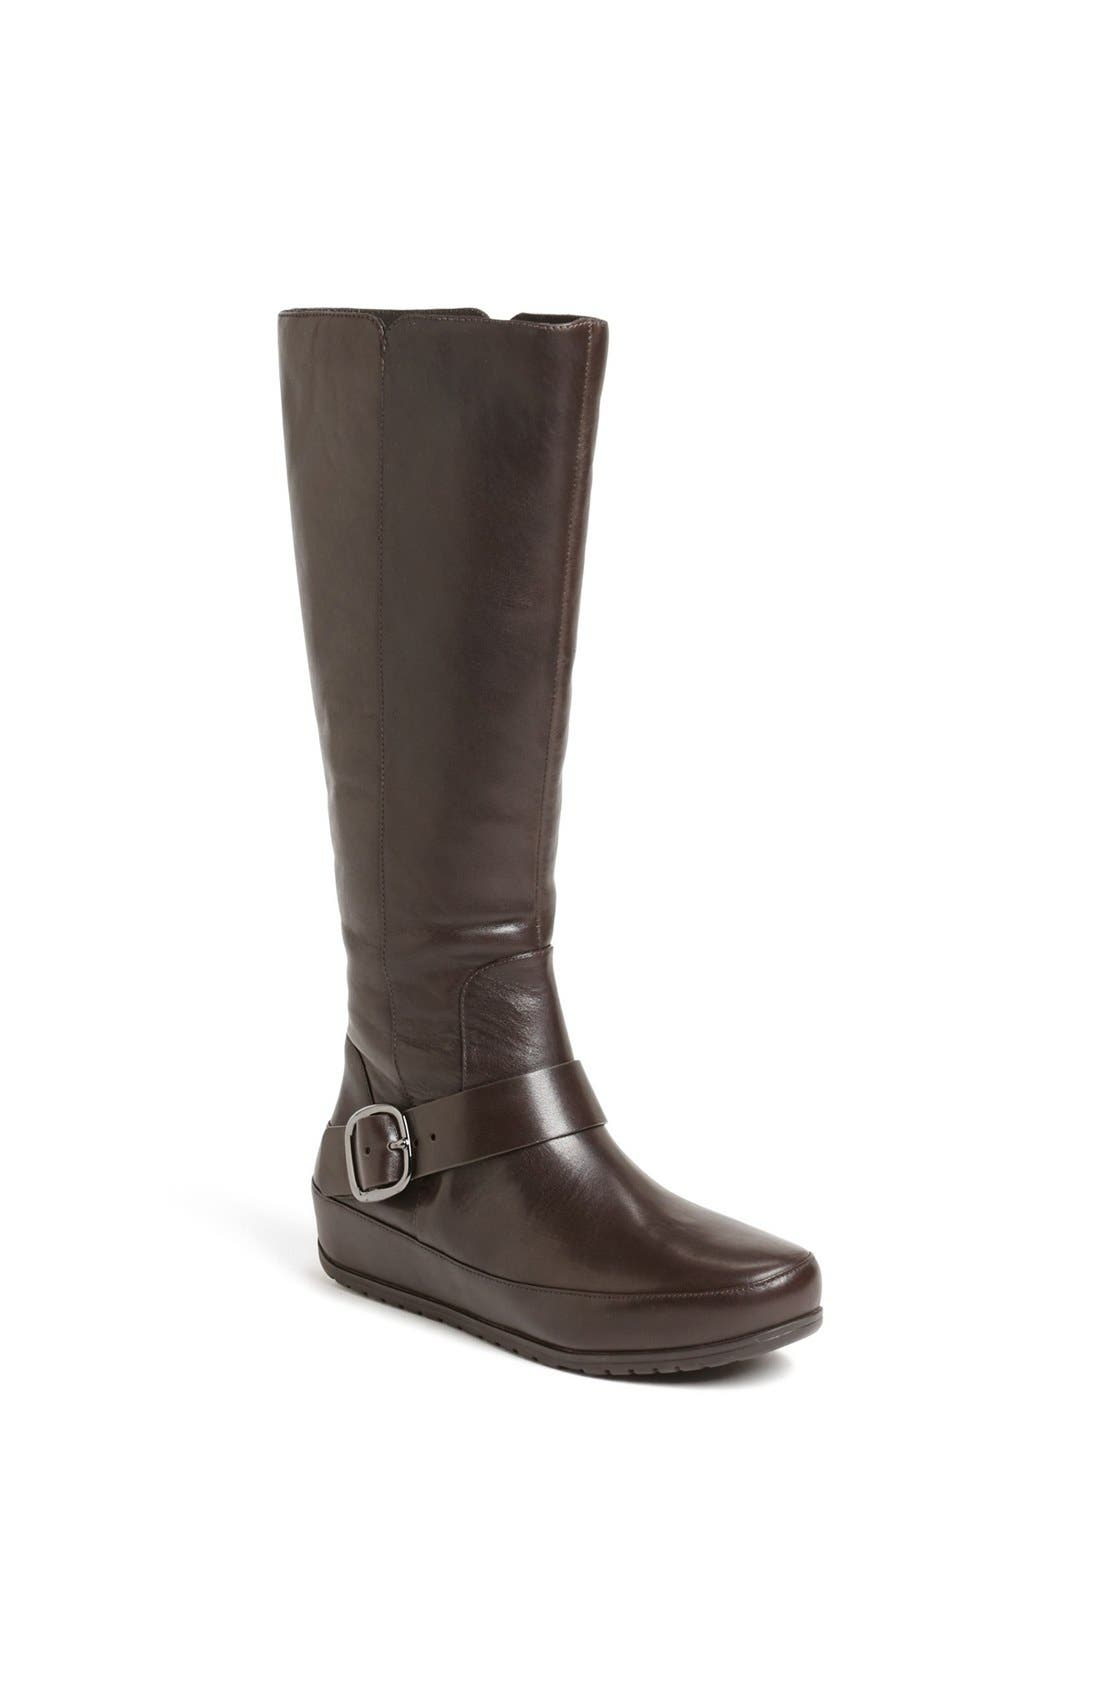 Alternate Image 1 Selected - FitFlop 'Duéboot™ Buckle' Tall Leather Boot